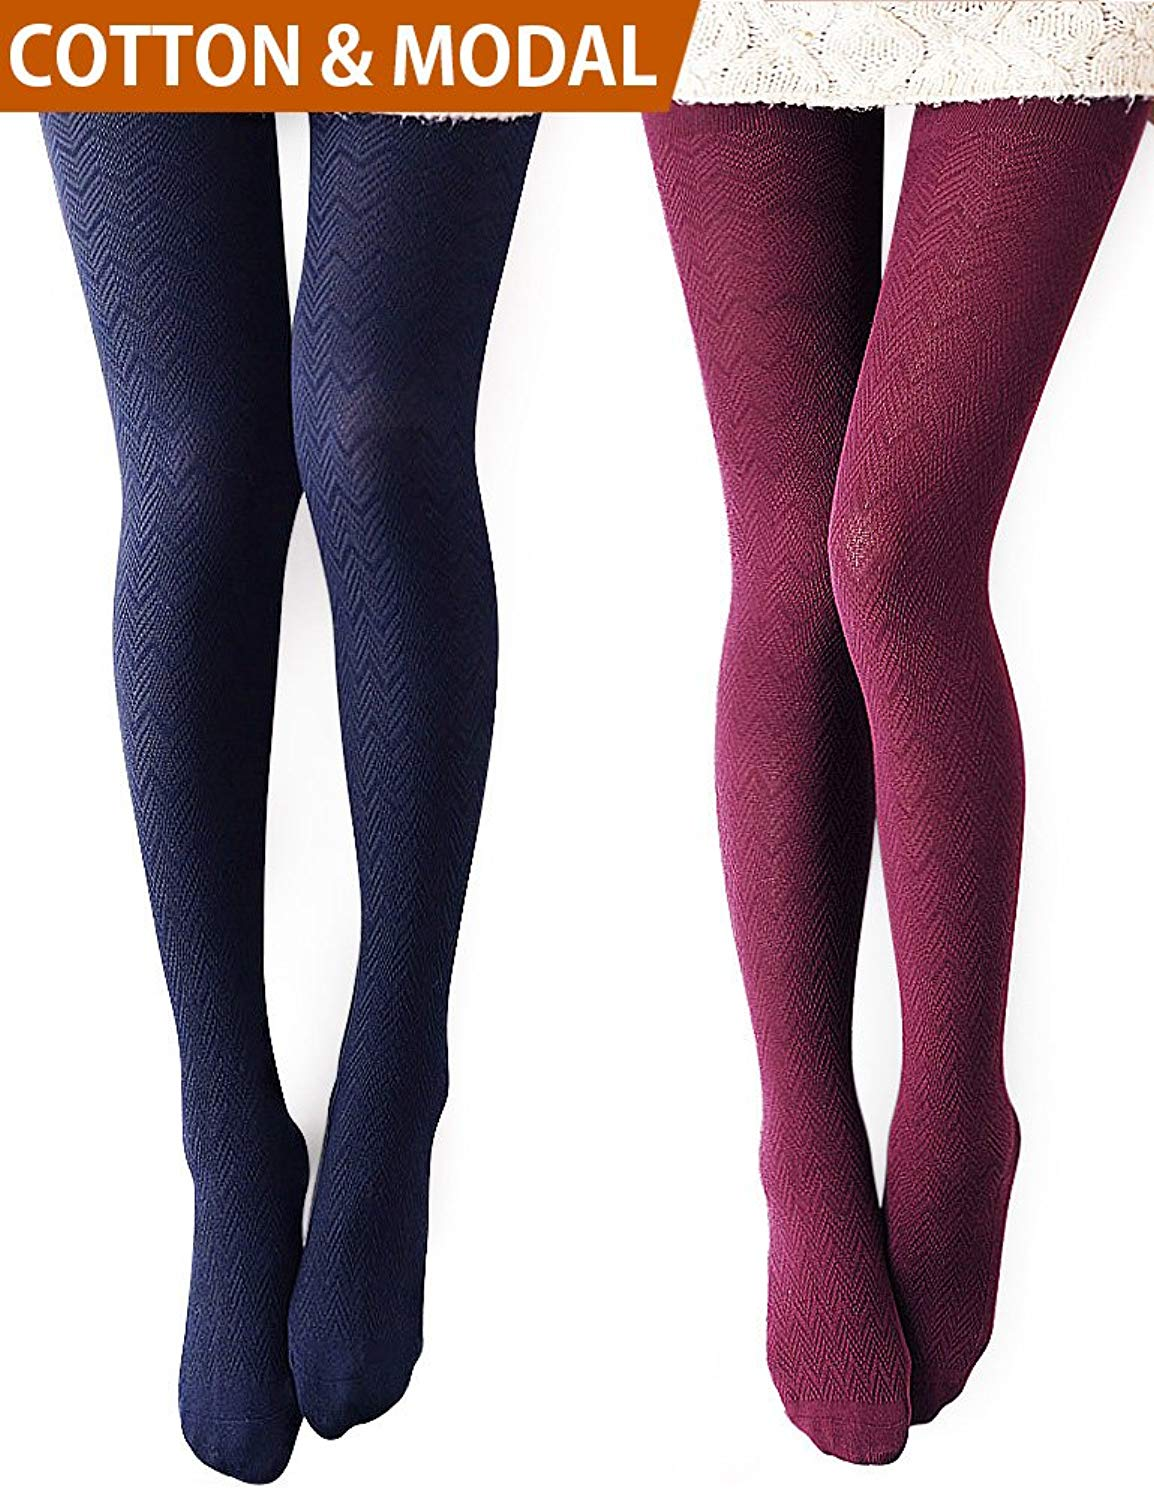 1ef597605 Get Quotations · VERO MONTE Modal   Cotton Opaque Patterned Tights for Women  - Knitted Tights